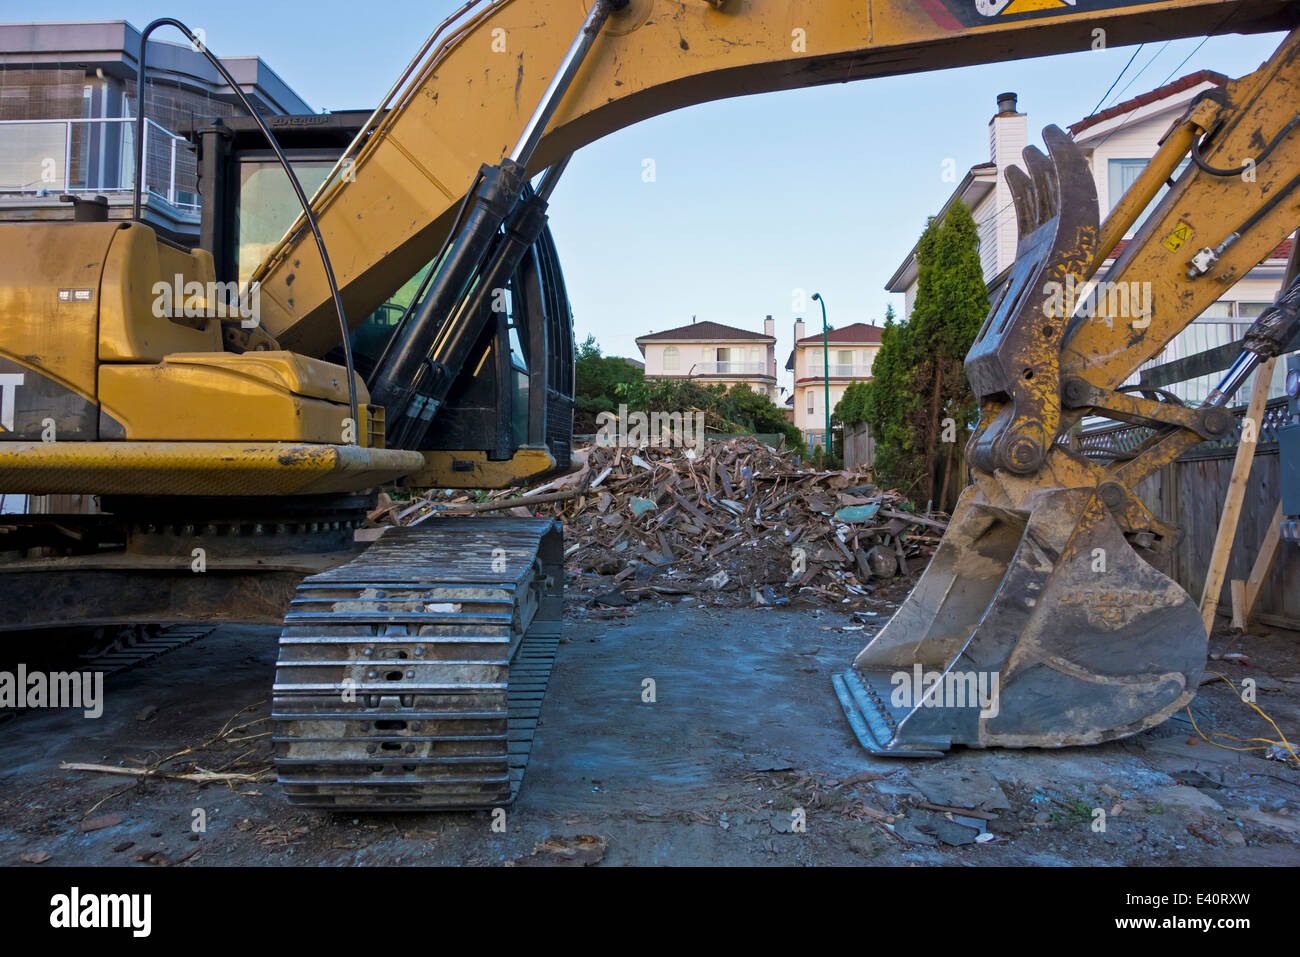 Backhoe with the rubble of a torn down house in Burnaby, suburb of Vancouver.  Tear down to build a newer home. - Stock Image